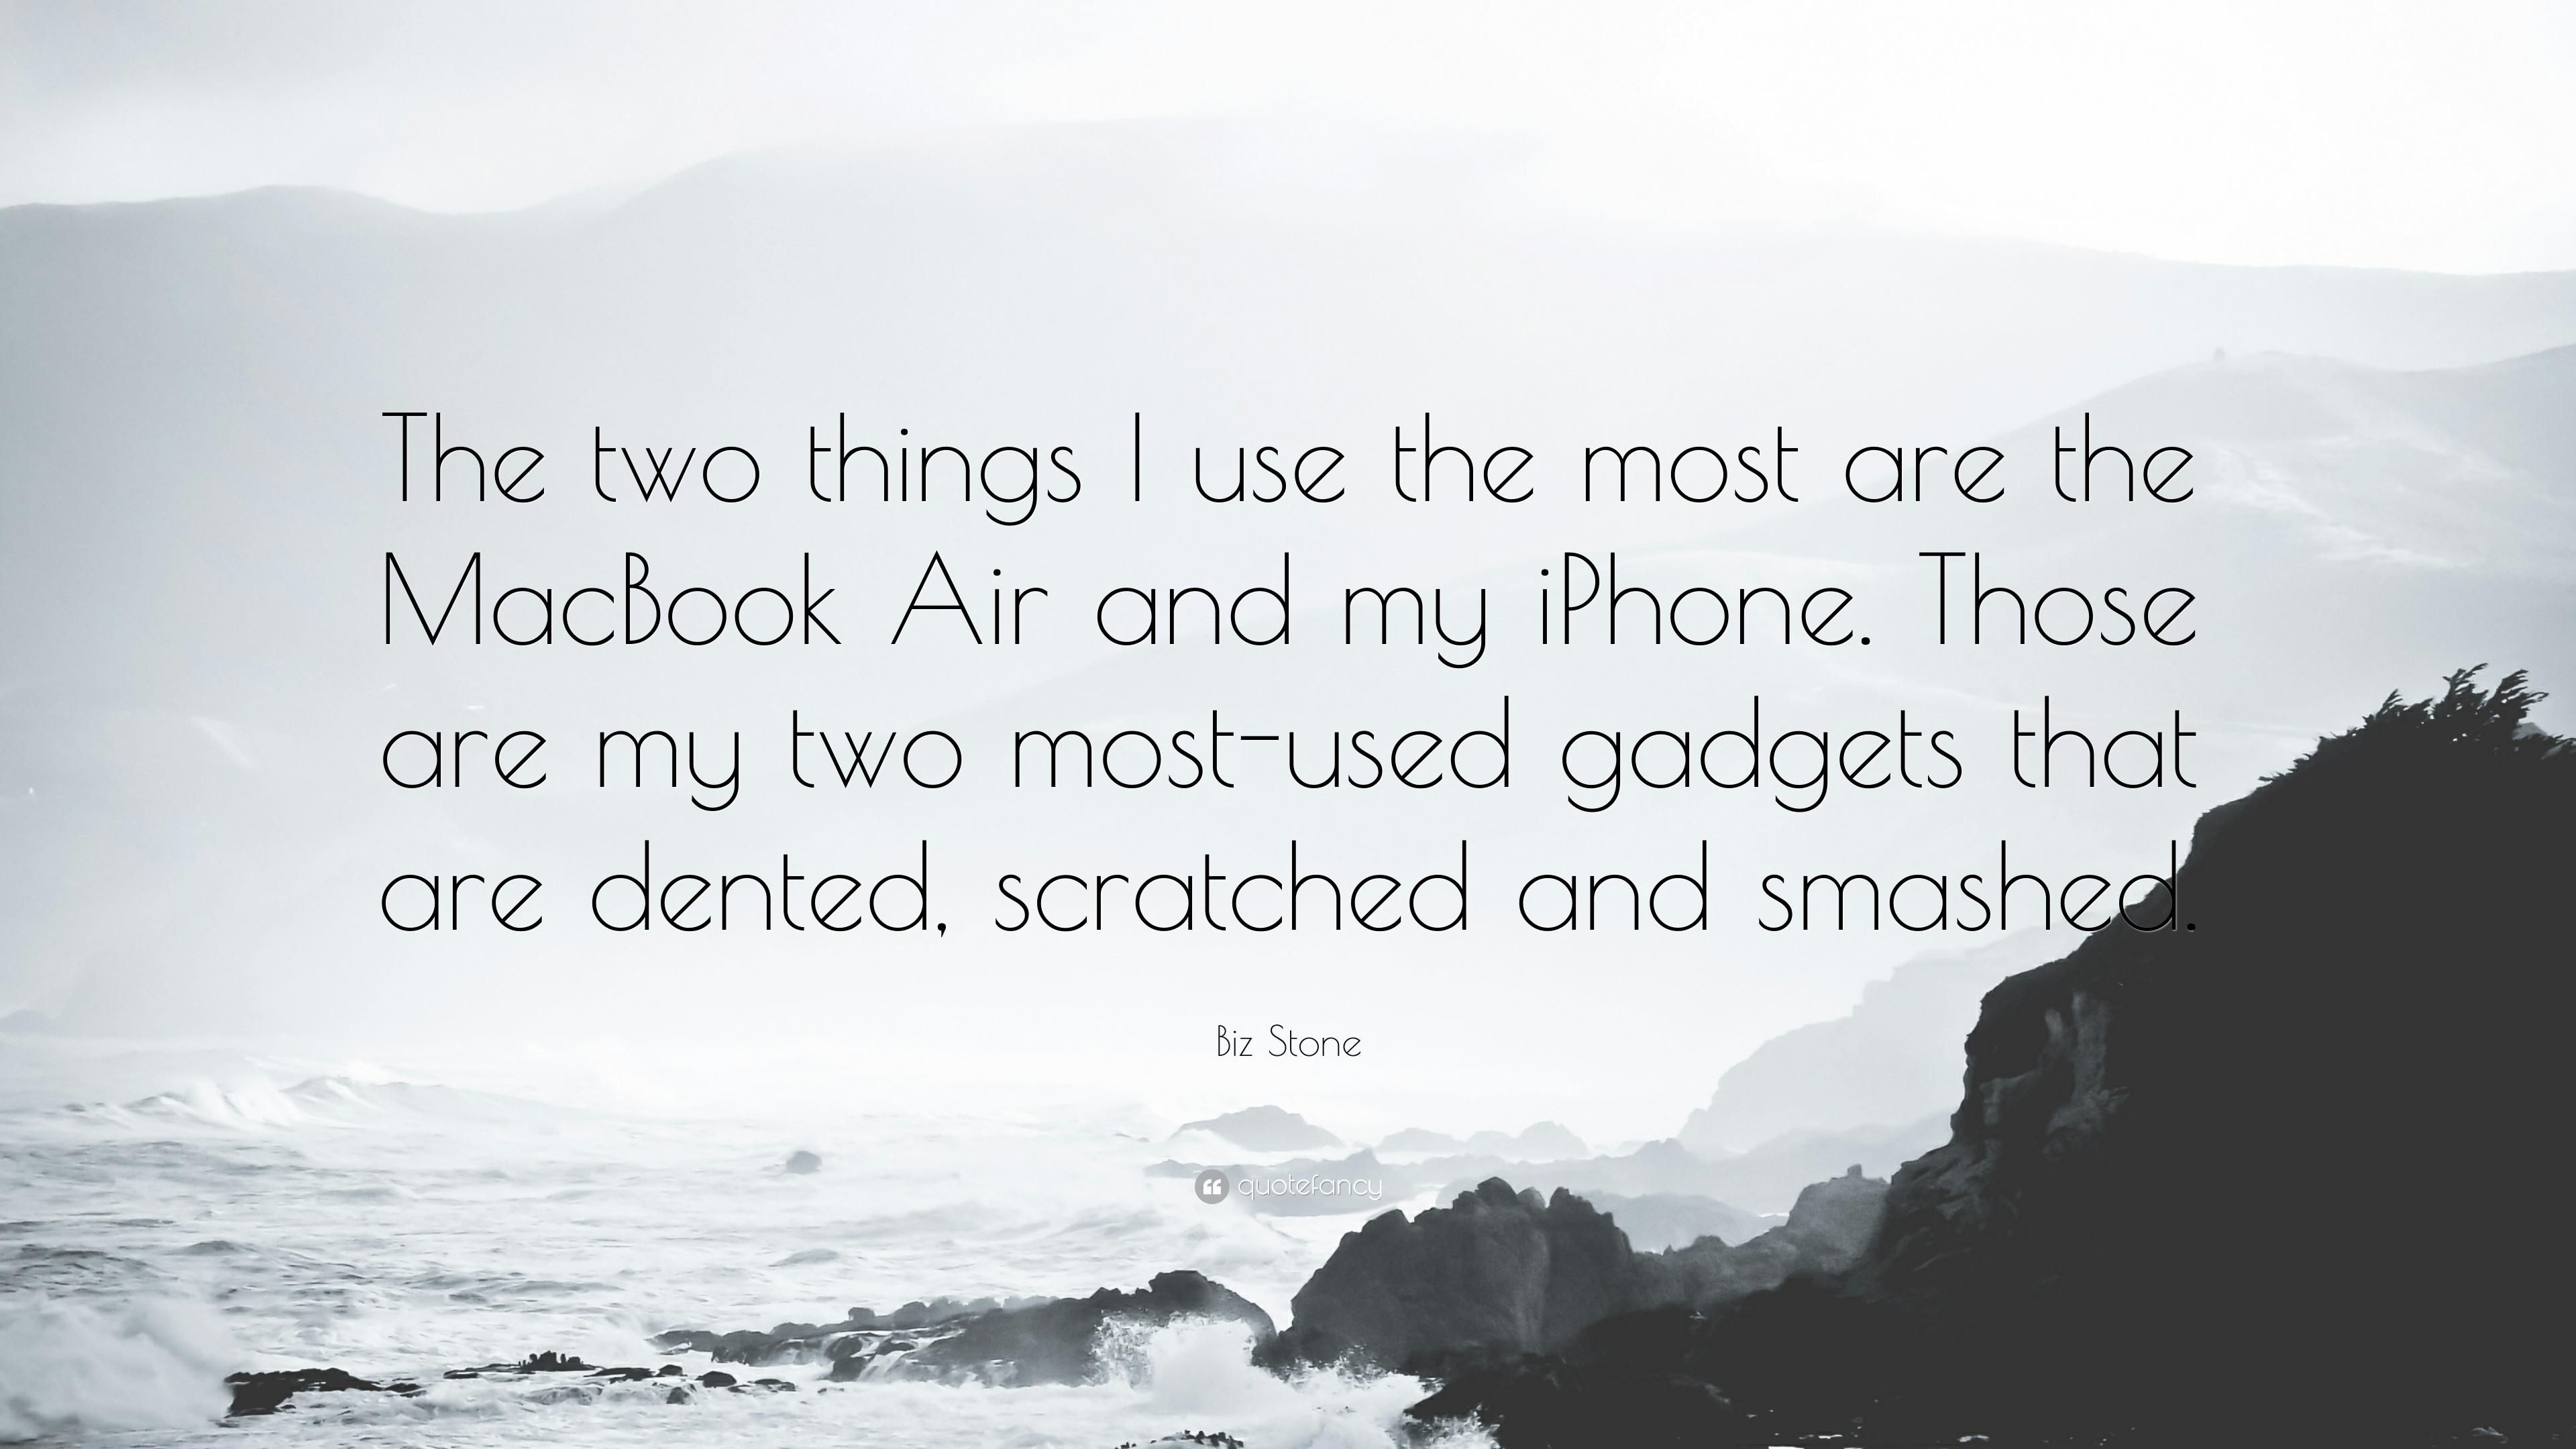 Top Wallpaper Macbook Quote - 2277236-Biz-Stone-Quote-The-two-things-I-use-the-most-are-the-MacBook-Air  Pic_38584.jpg